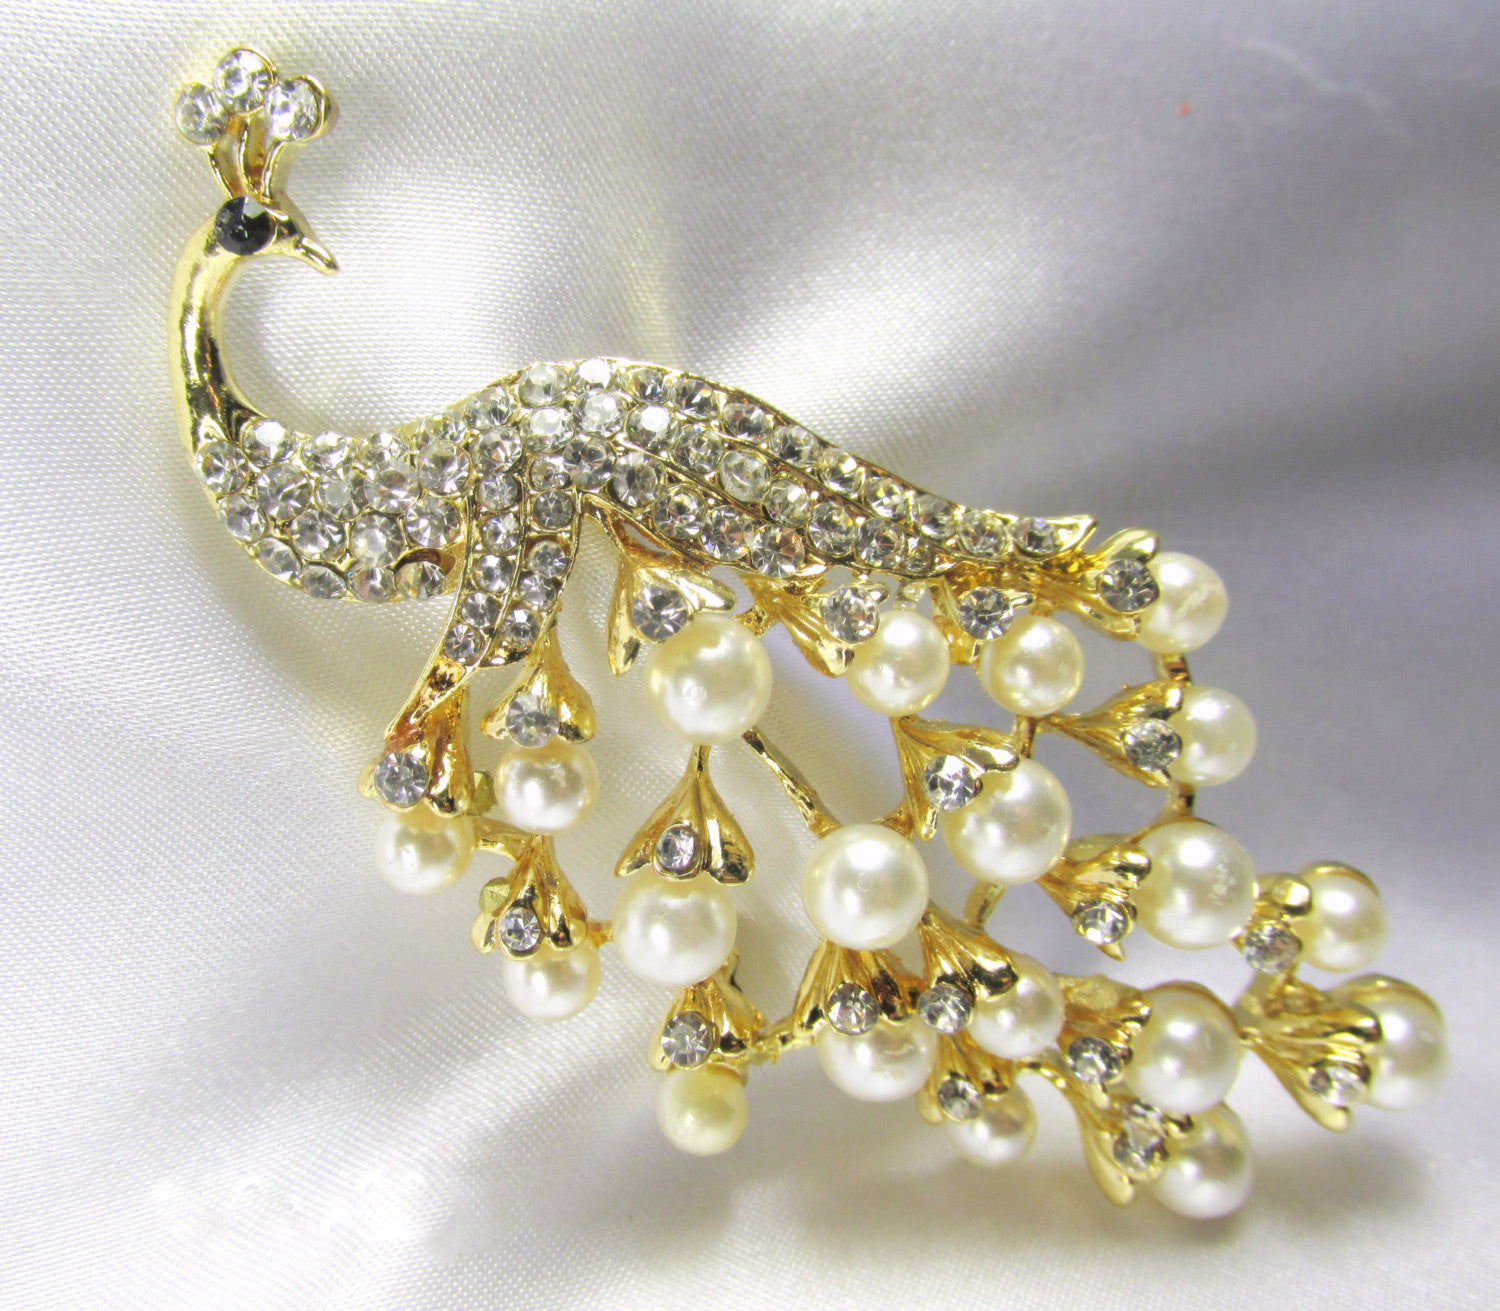 Peacock Brooch with White Pearls and Clear Crystals in Gold - Odyssey Cache - 1